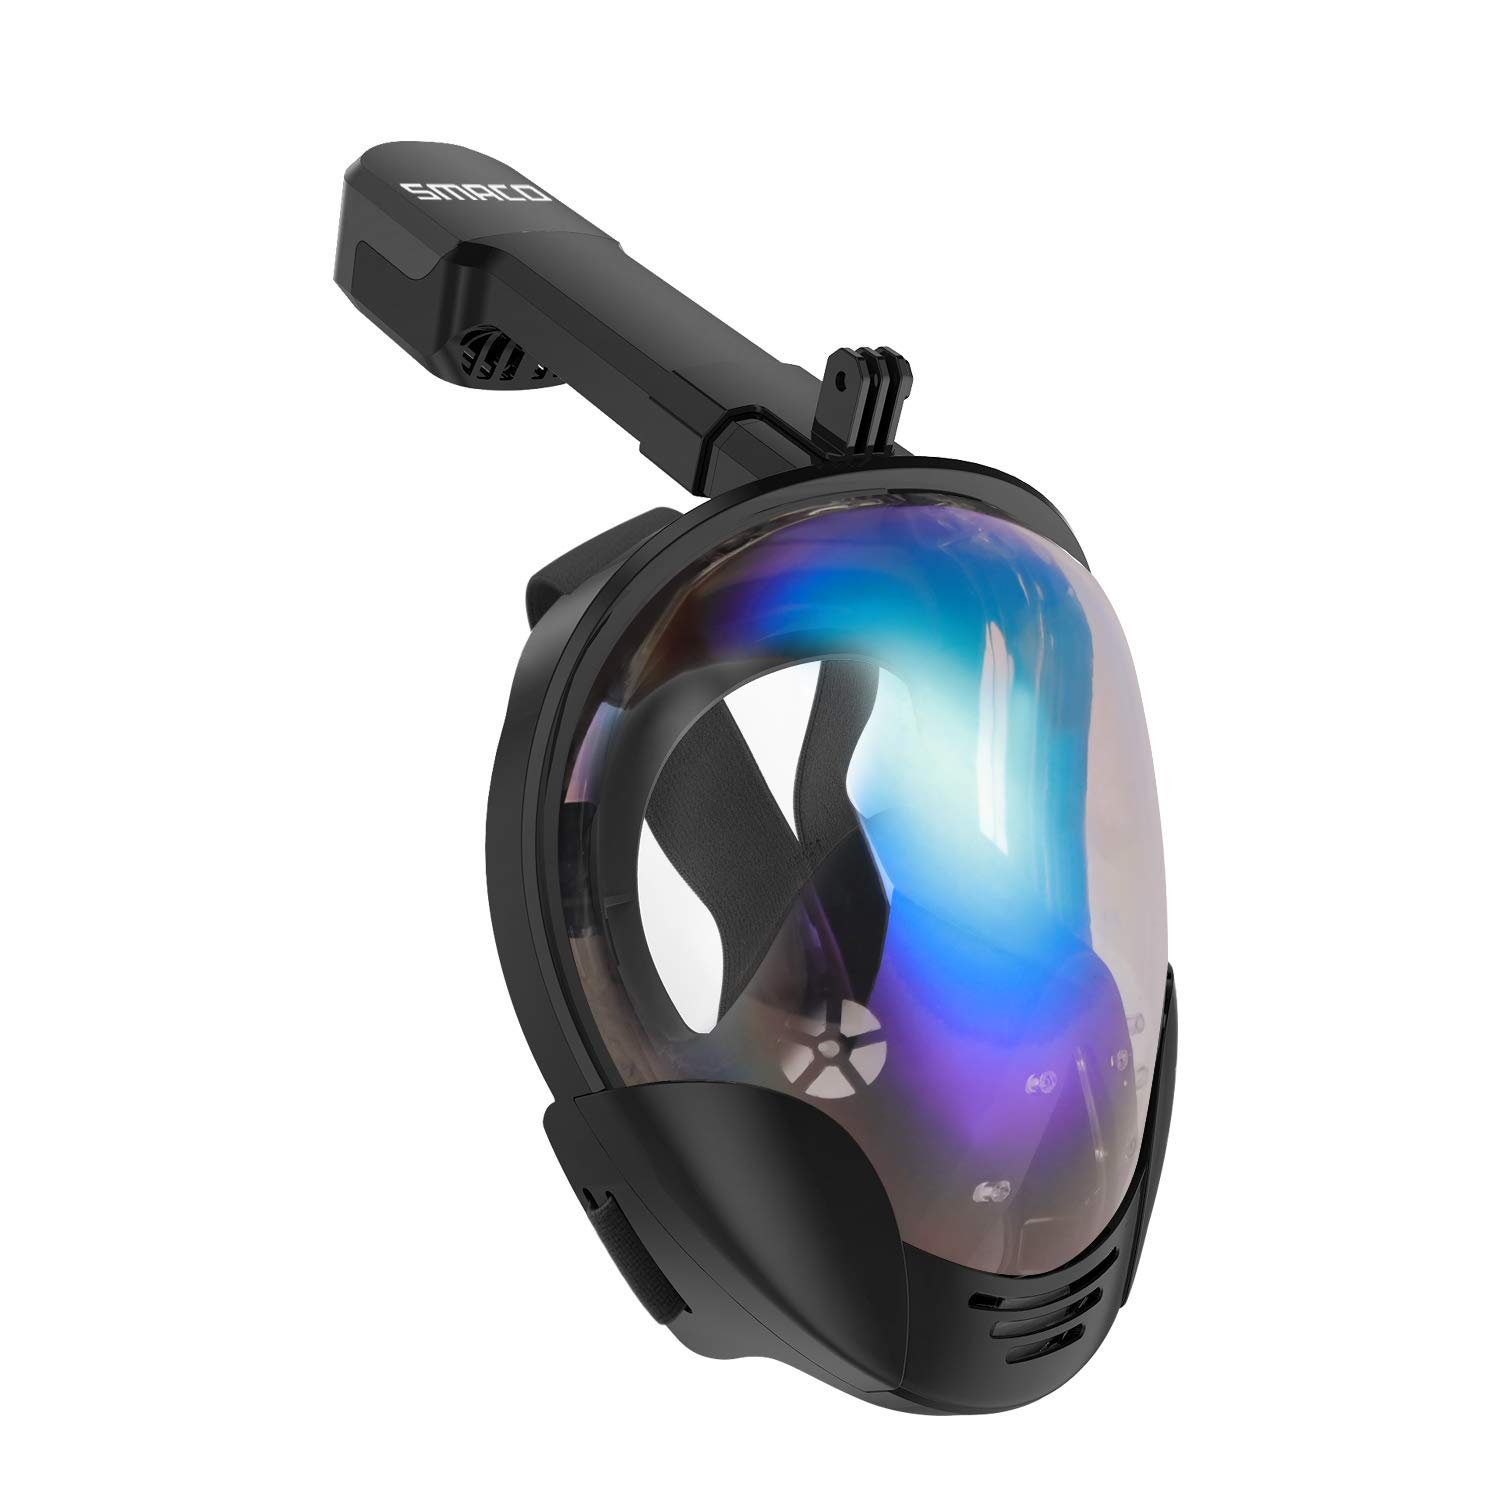 lululeague Full Face Snorkel Mask,Newest Version Snorkeling Mask with Detachable Camera Mount,Foldable 180 Panoramic View Anti-Fog Anti-Leak Respiratory Diving mask (L/XL) by lululeague